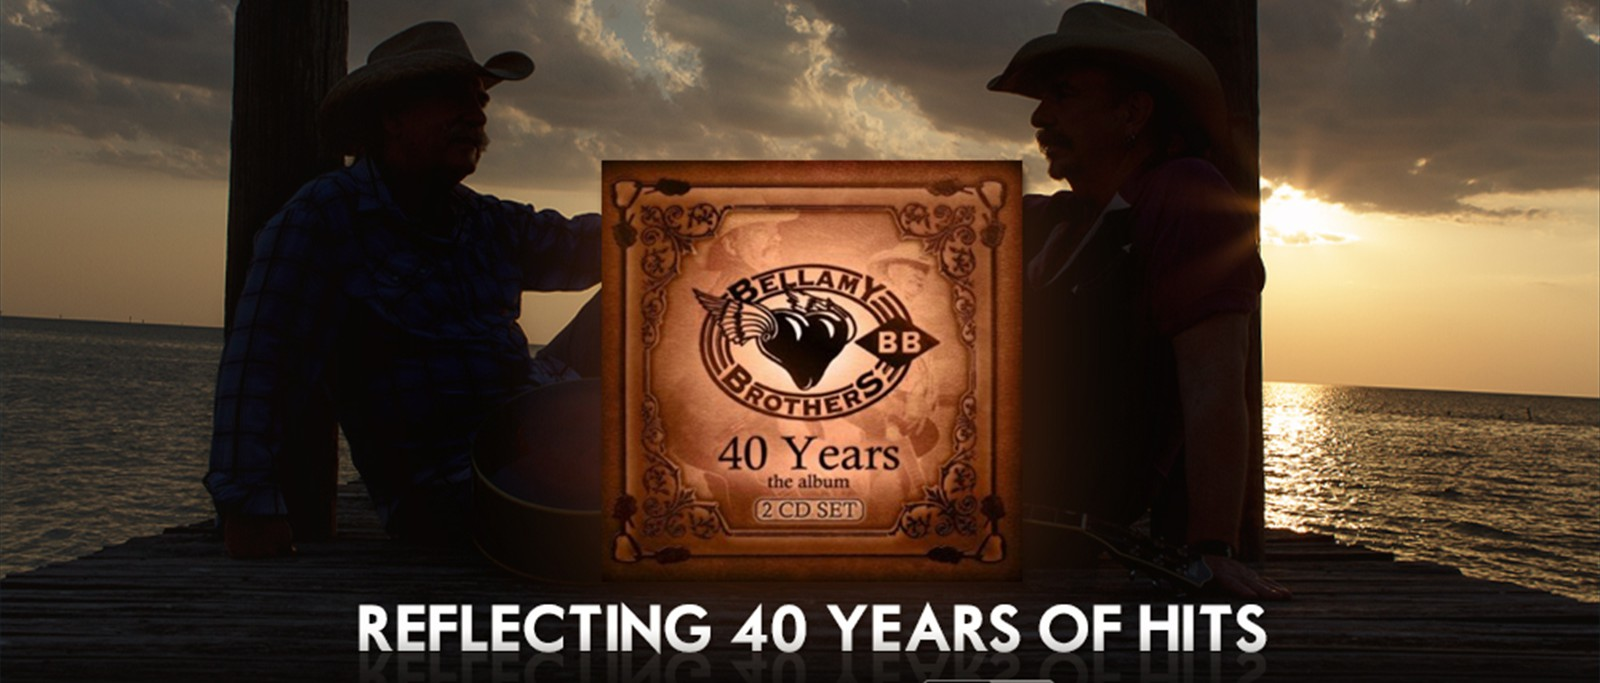 Reflecting on 40 Years